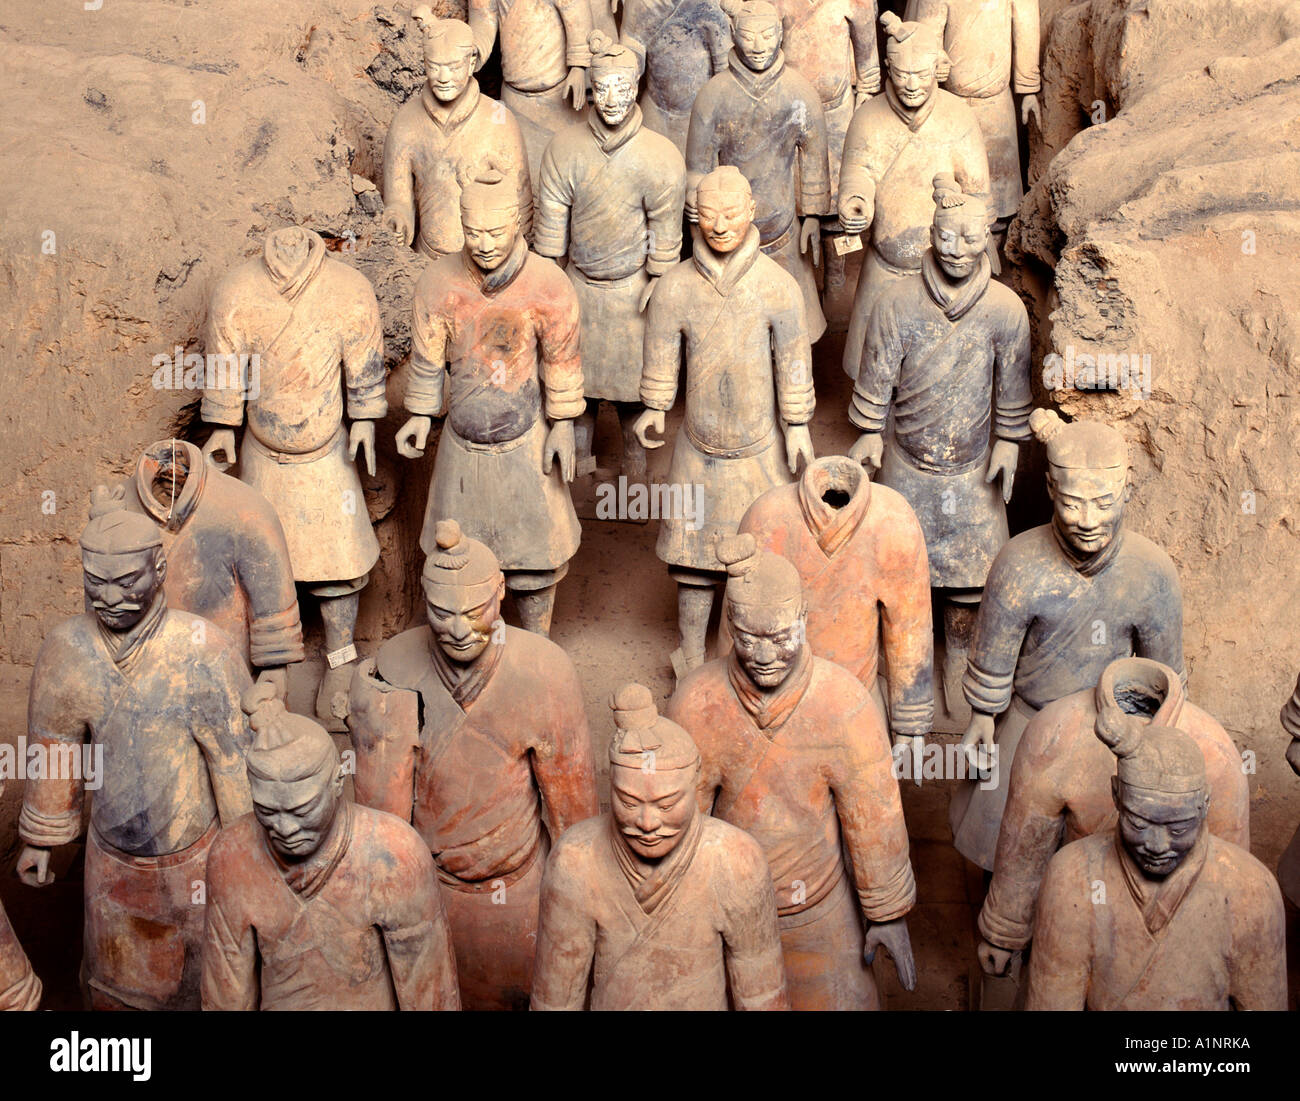 Terracotta Warriors, Xian, China - Stock Image